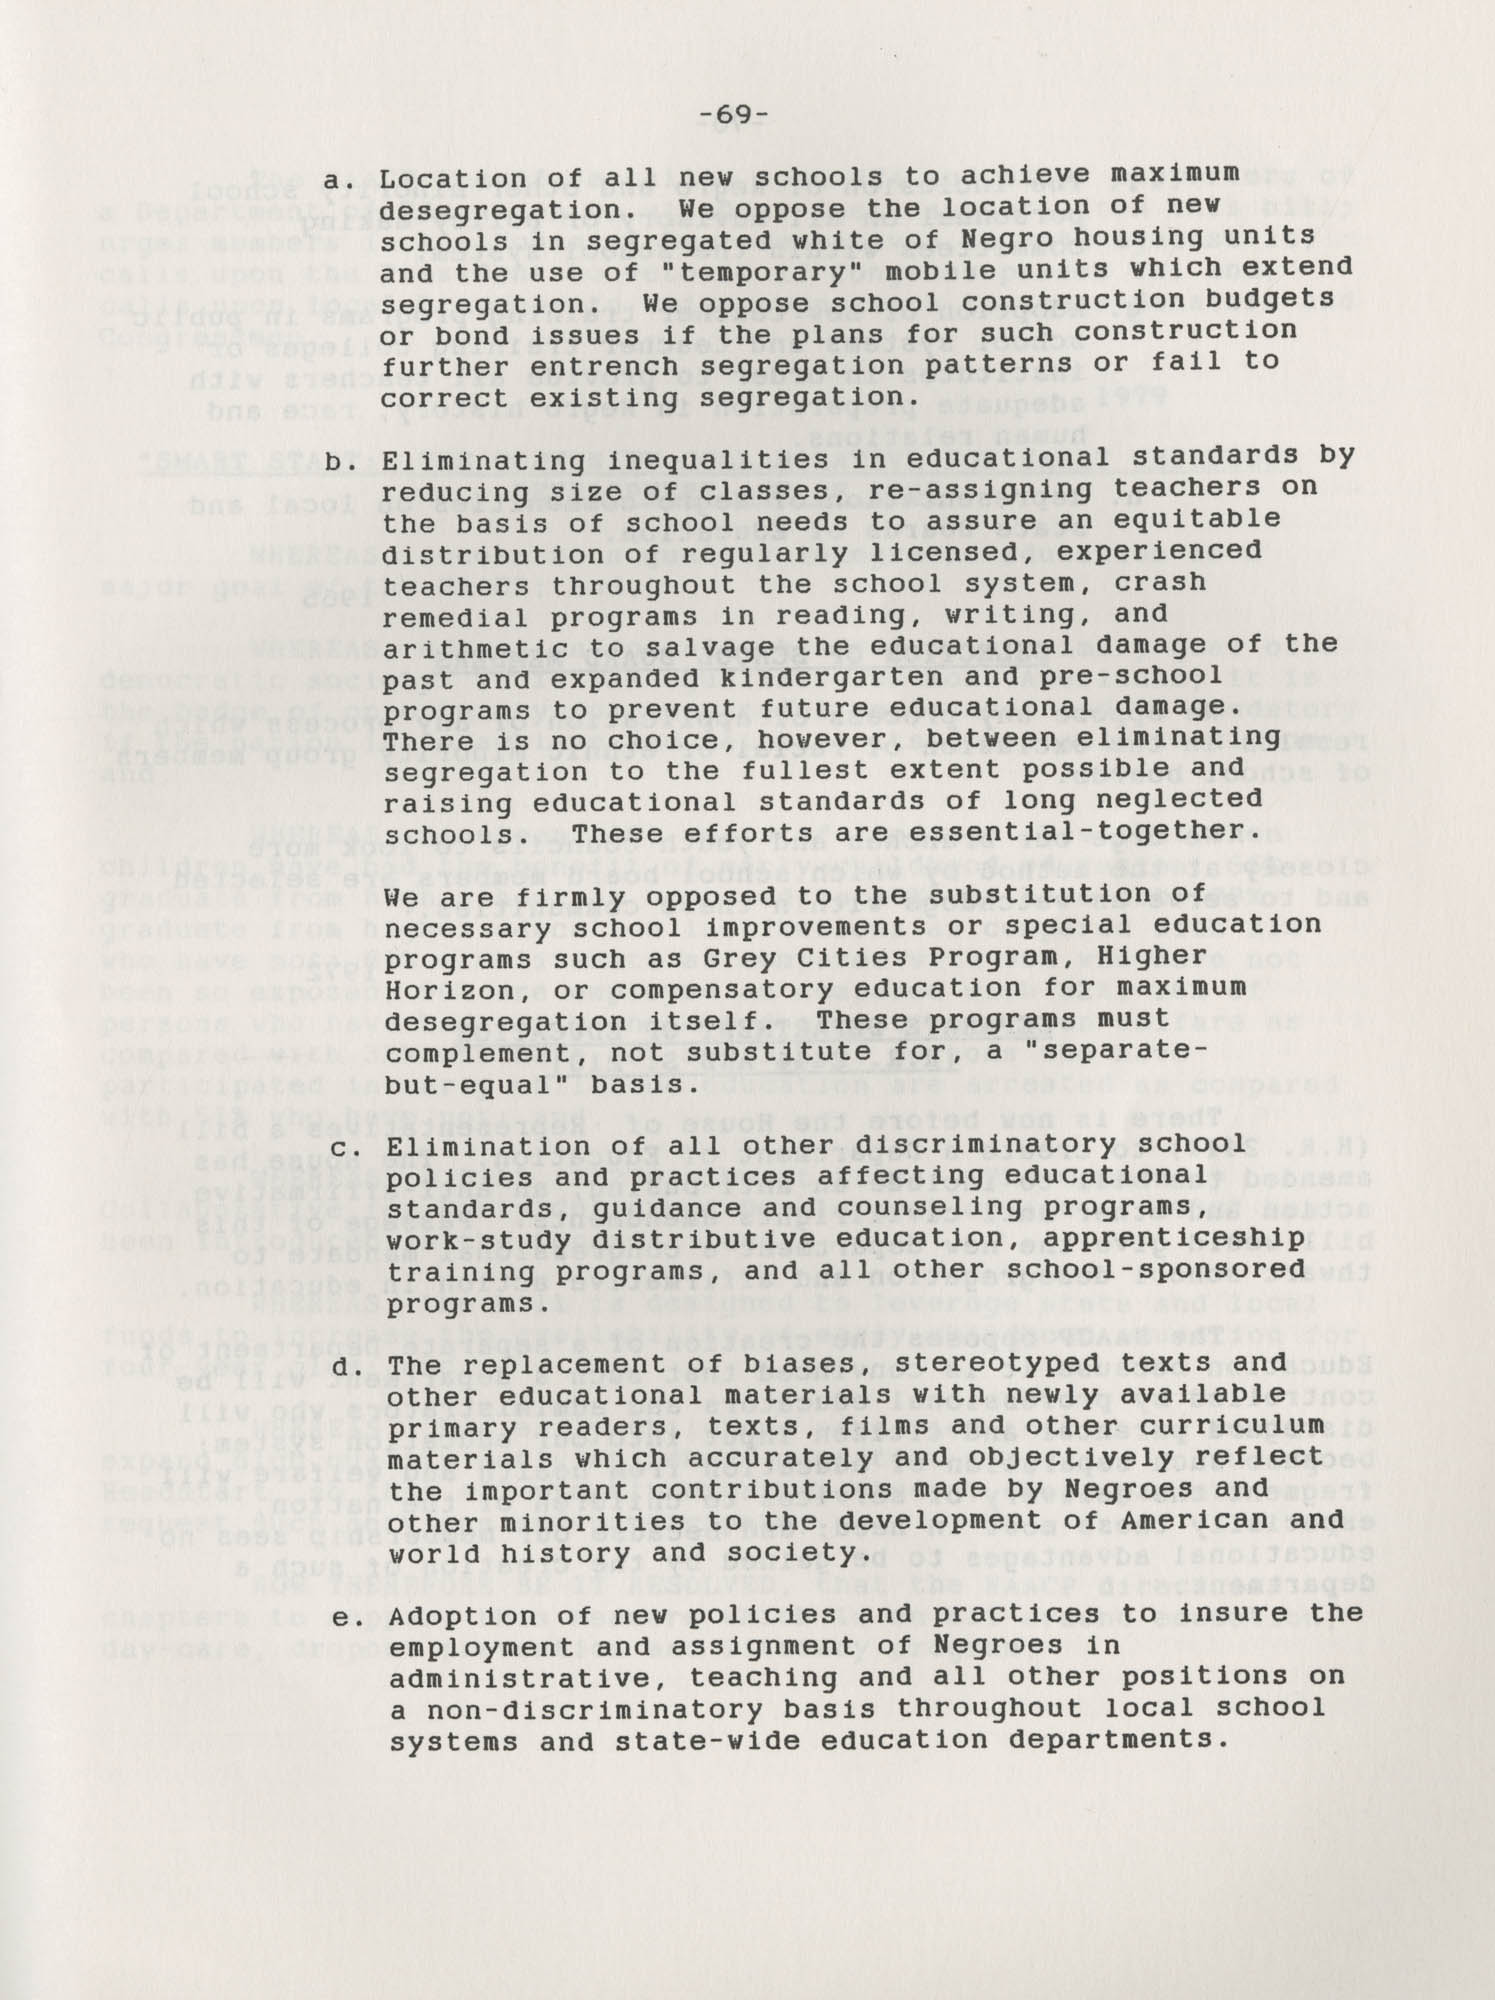 NAACP Resolutions on Education, 1970-1989, Index to Education Resolutions, Page 69